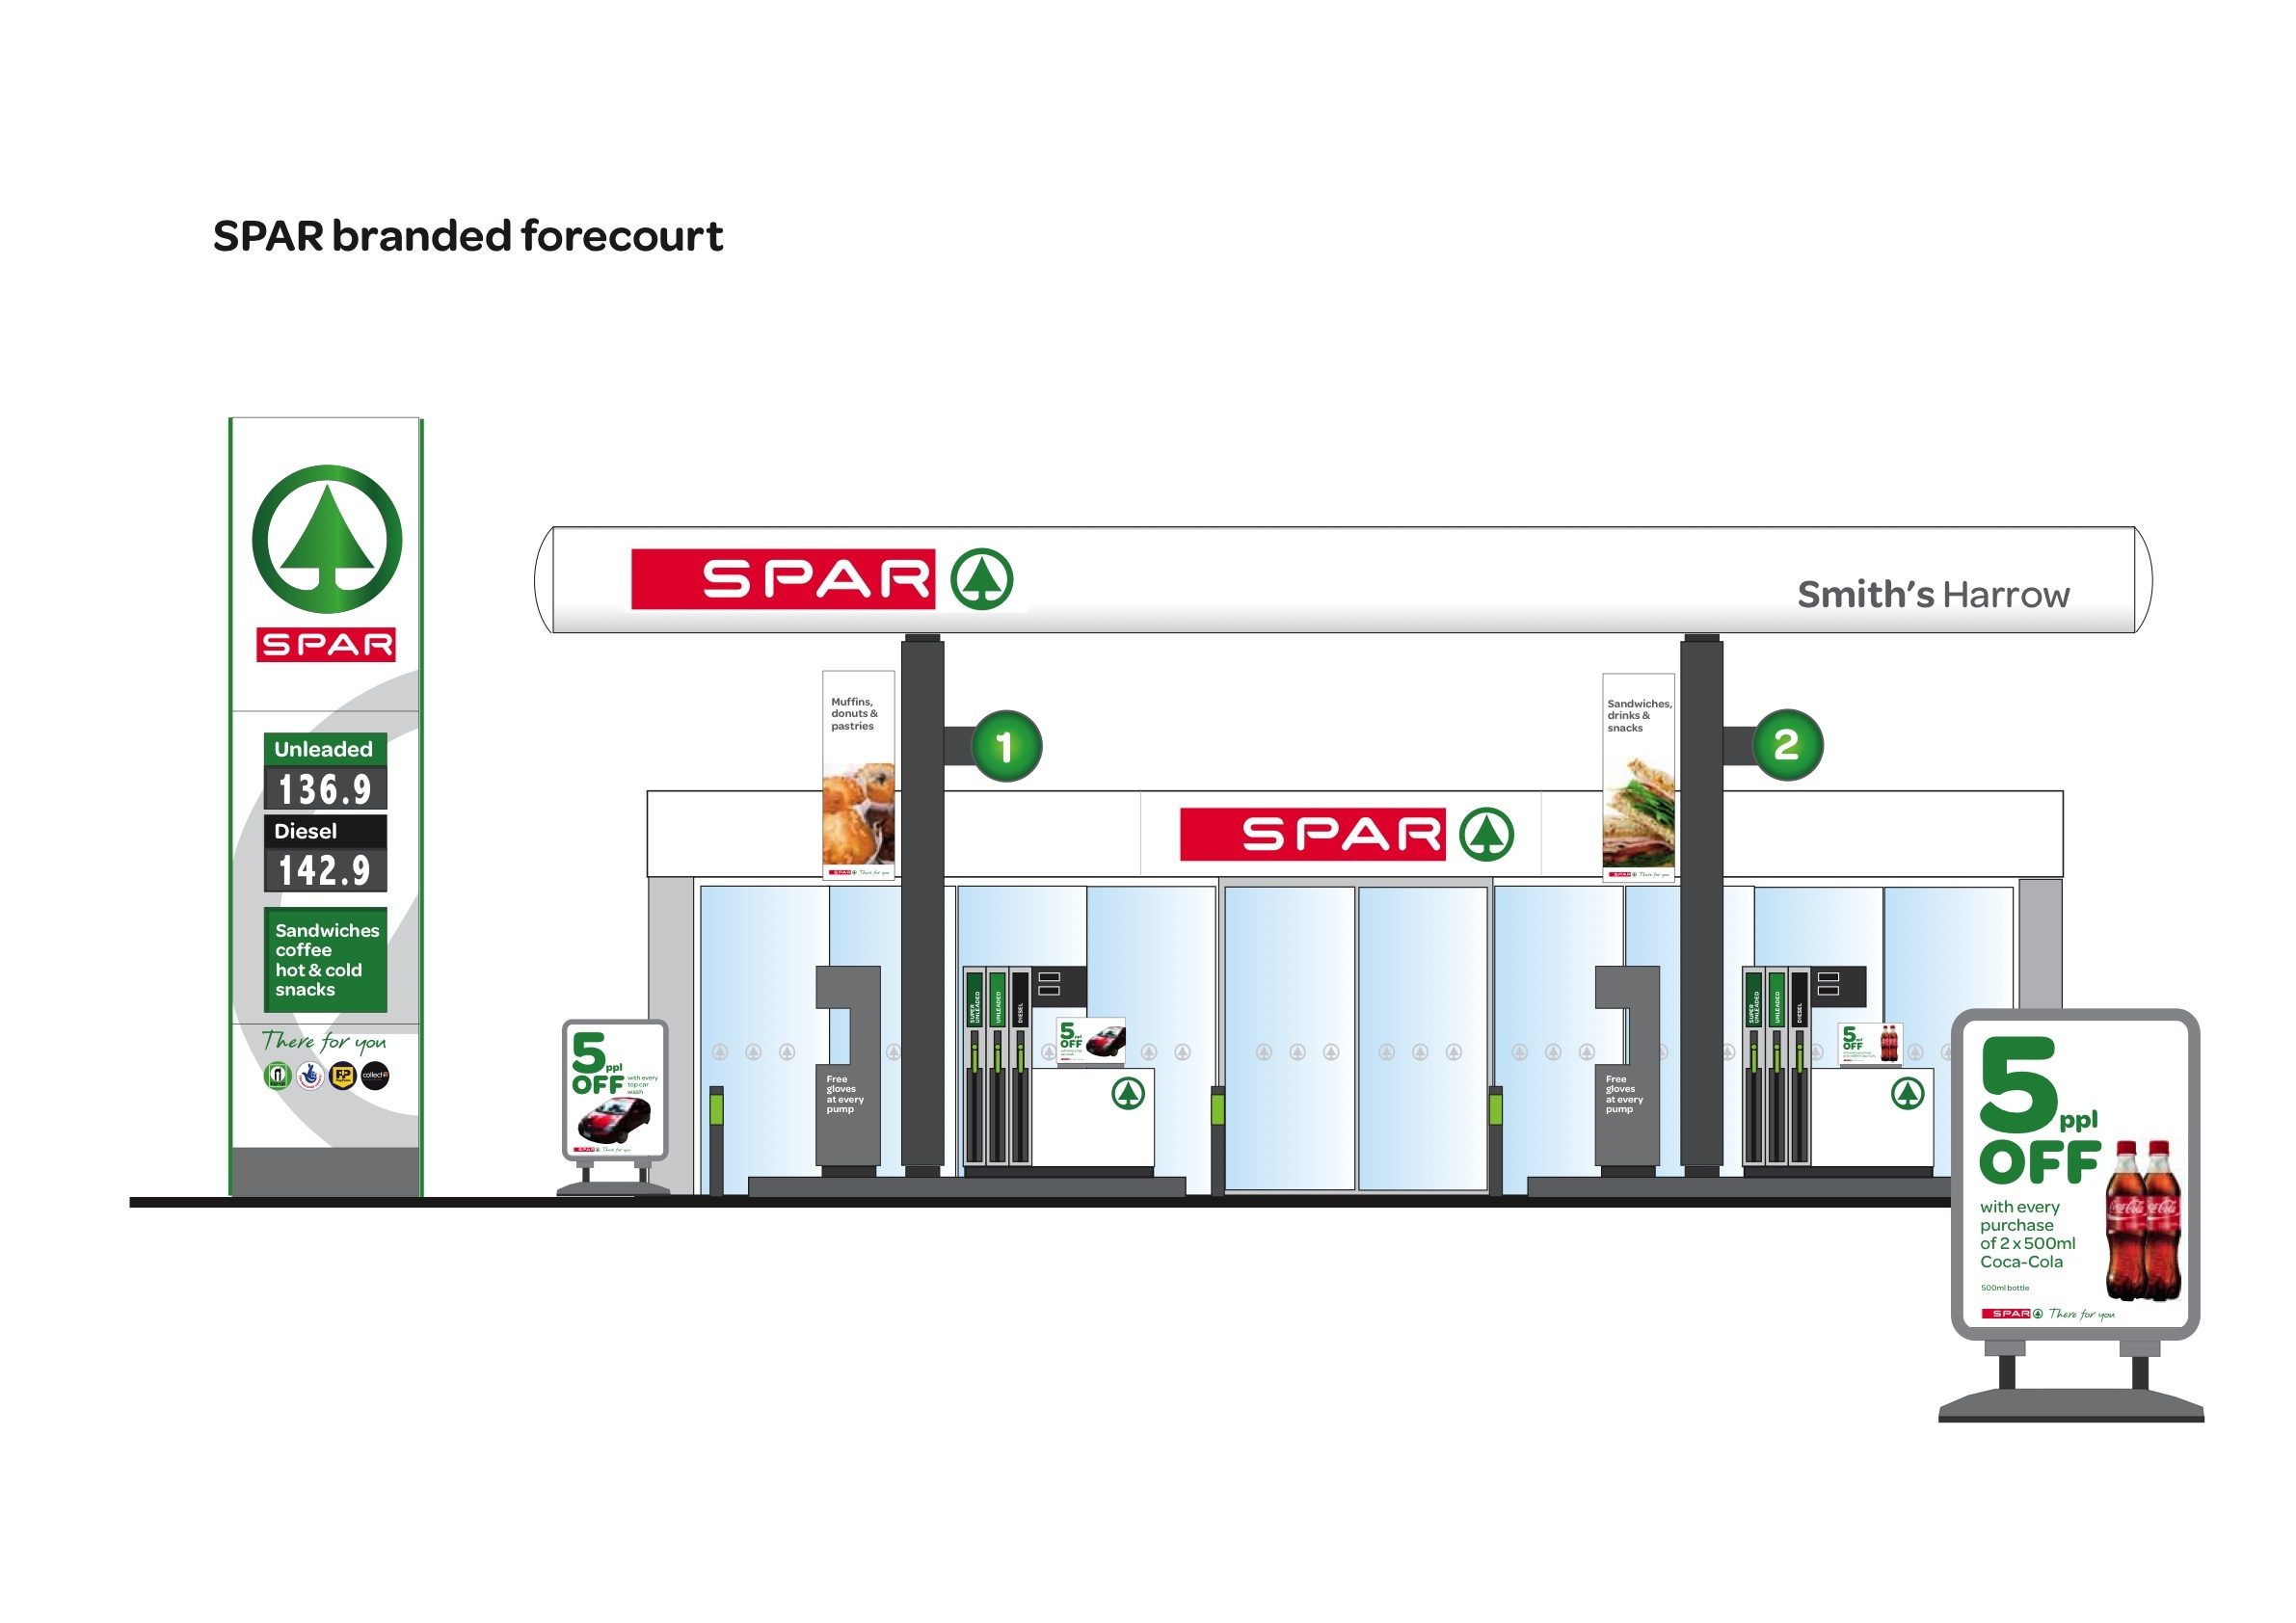 New Spar-branded forecourt concept